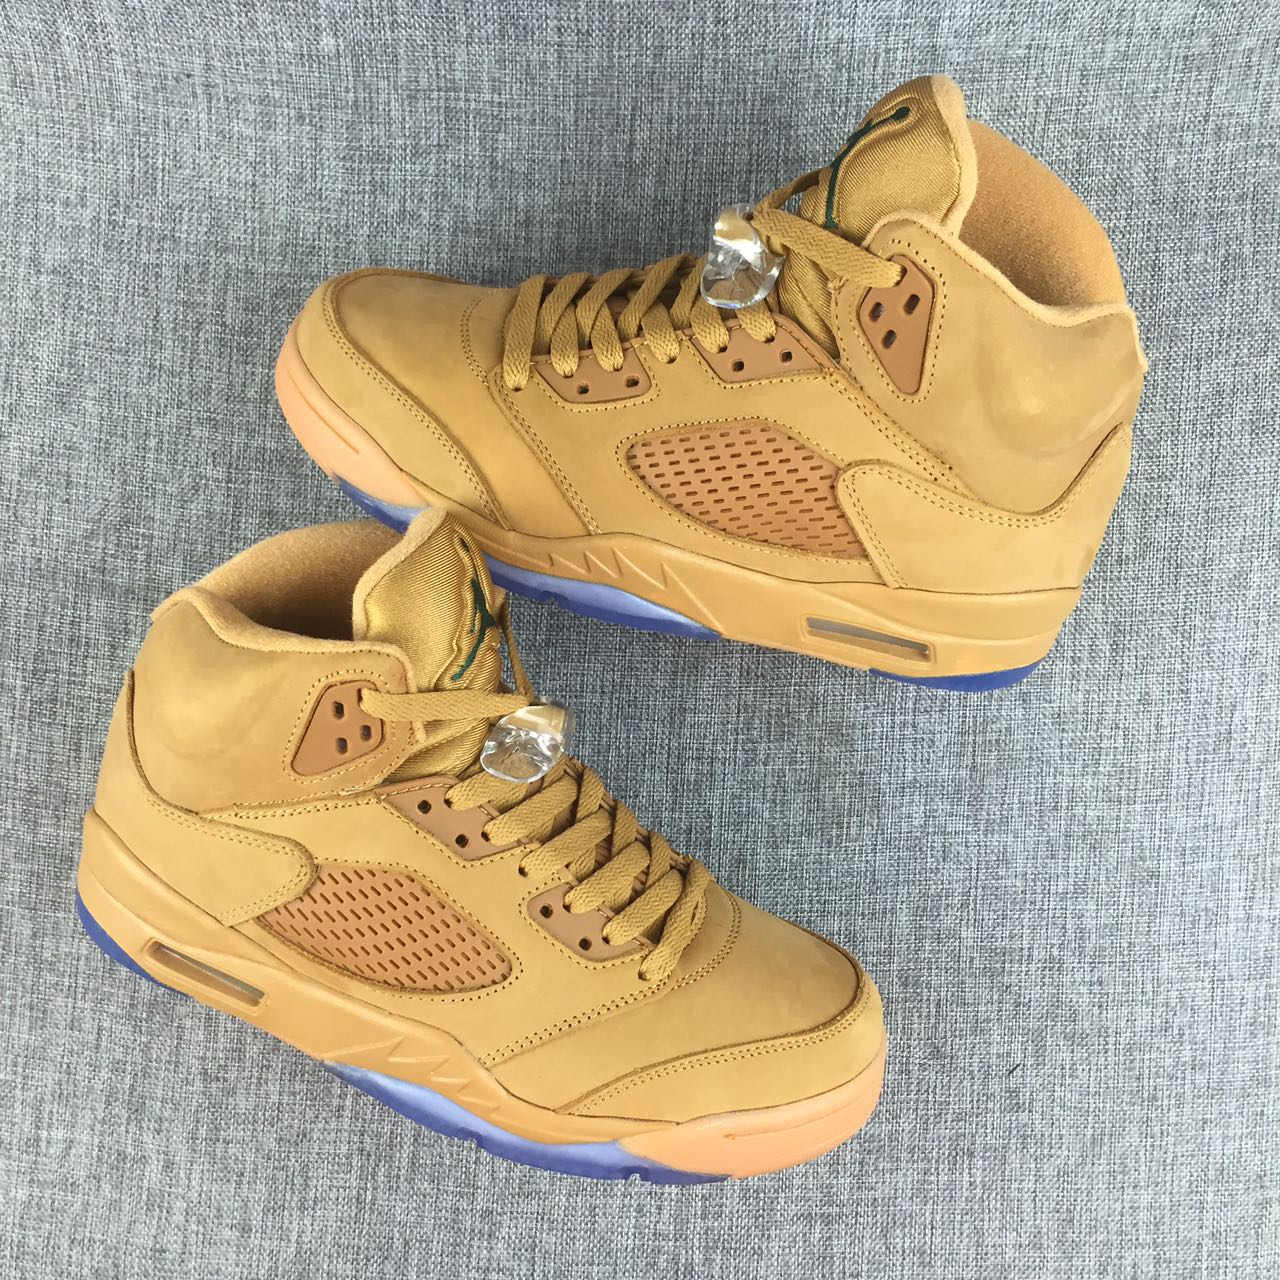 New Air Jordan 5 Wheat Yellow Shoes